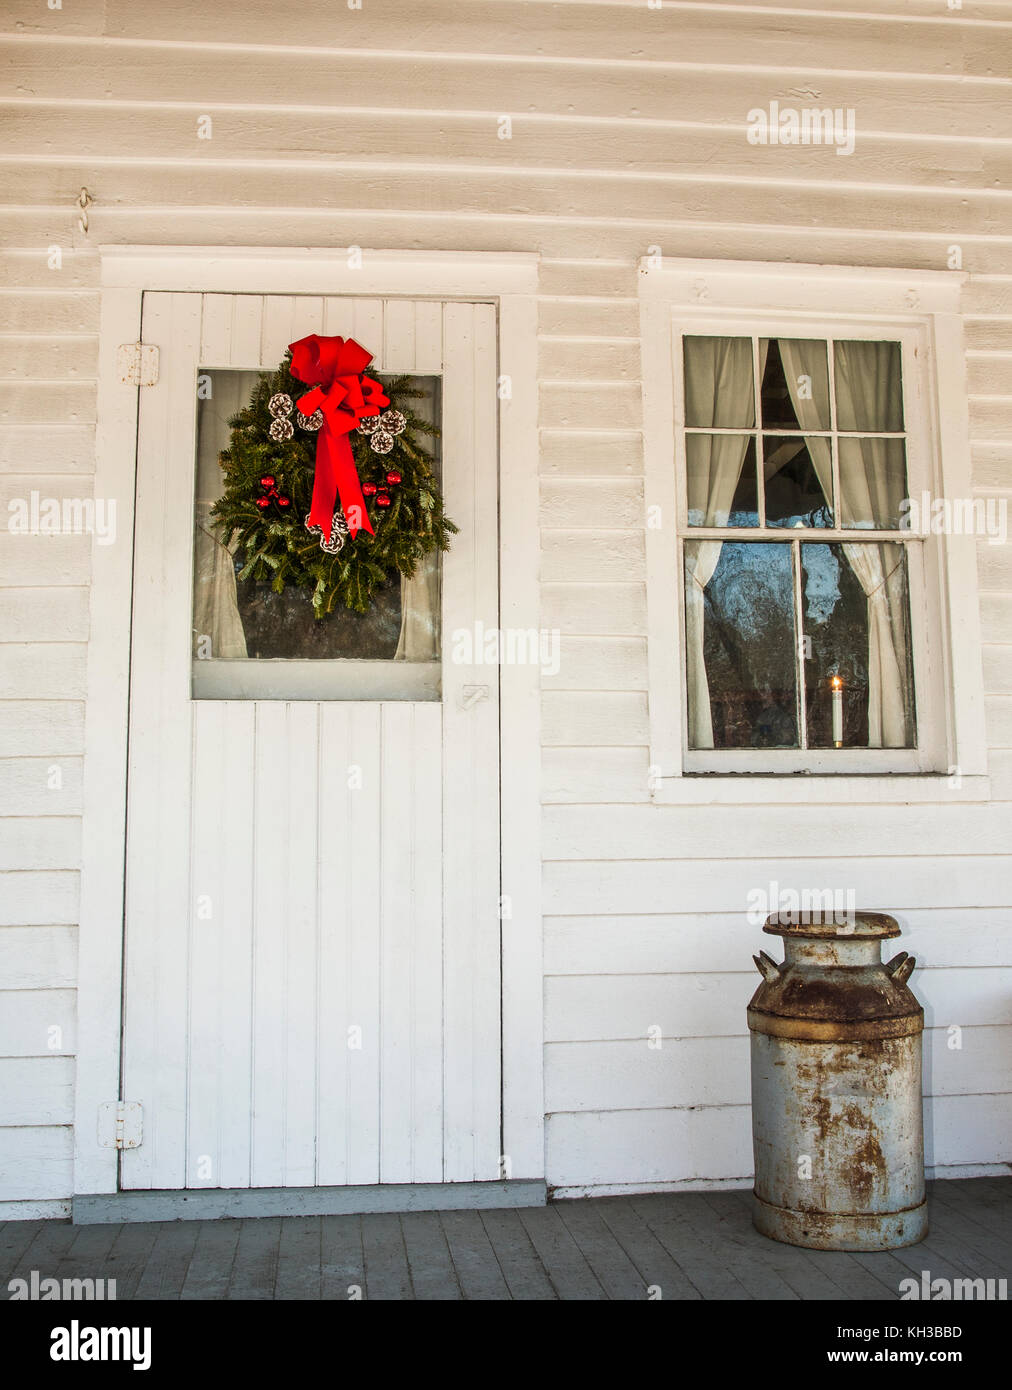 Winter Christmas Wreath On An Old Farm House Porch Winter Front Door Stock Photo Alamy